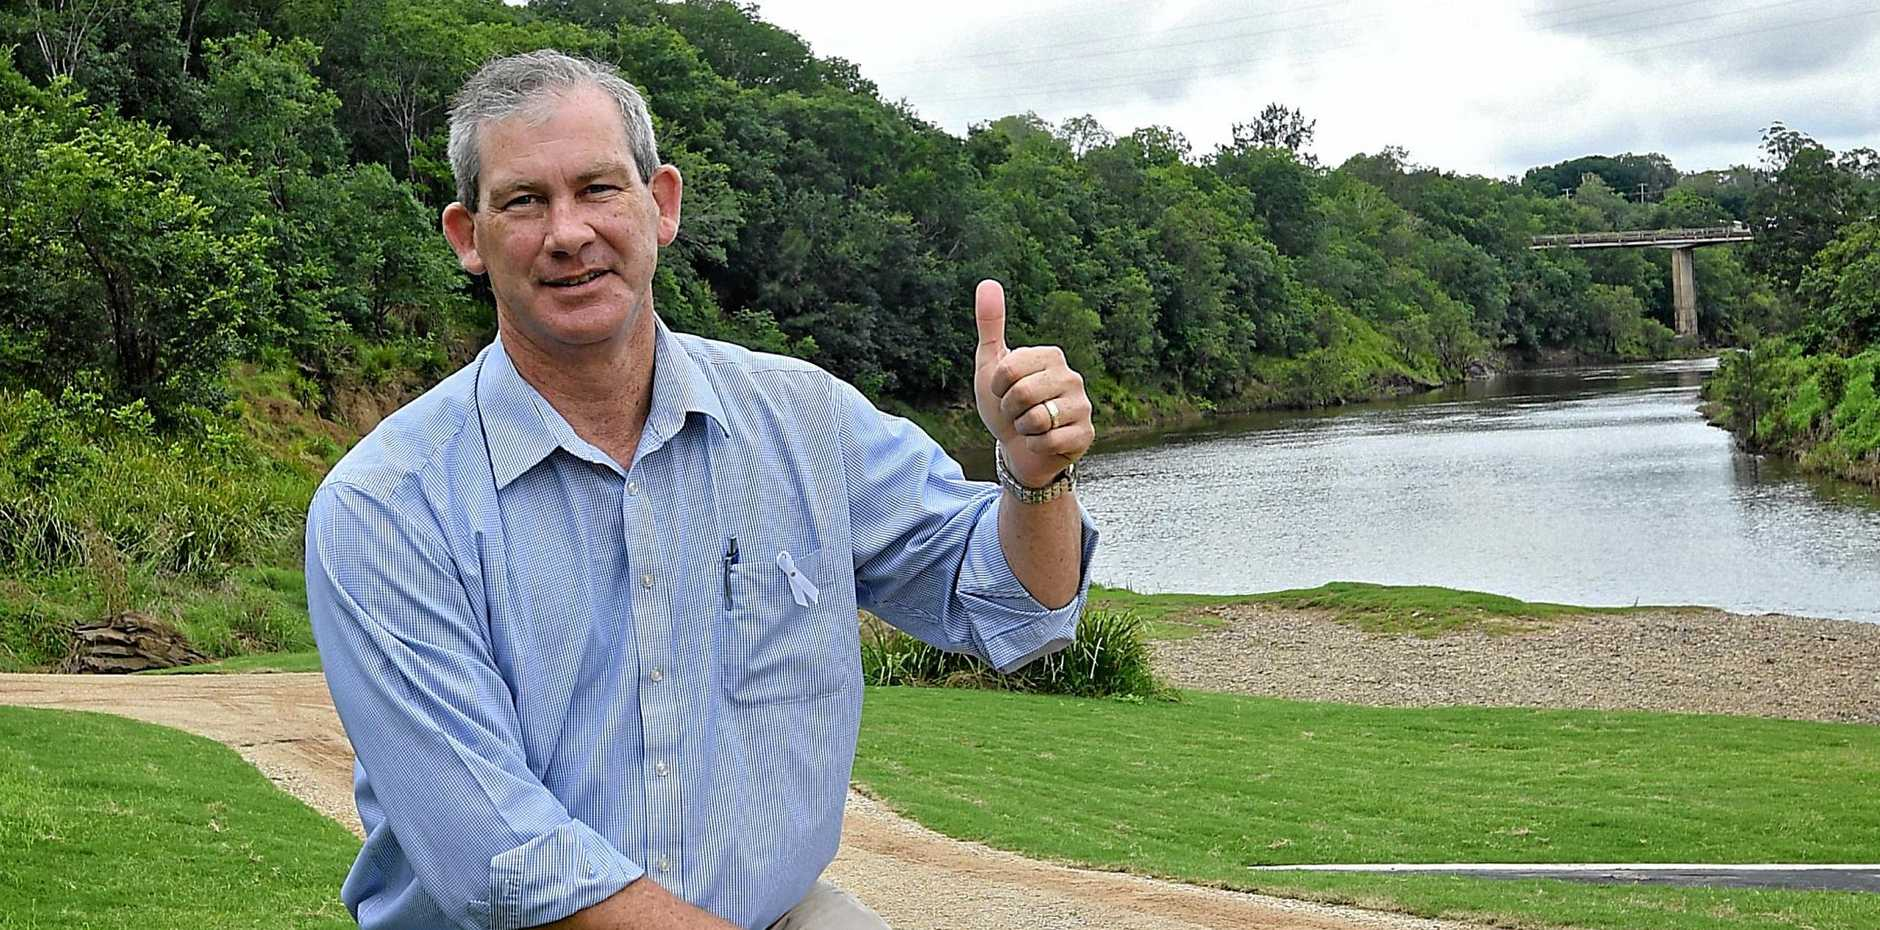 Benefits outweigh risks on River Trail, Gympie Mayor Mick Curran says.